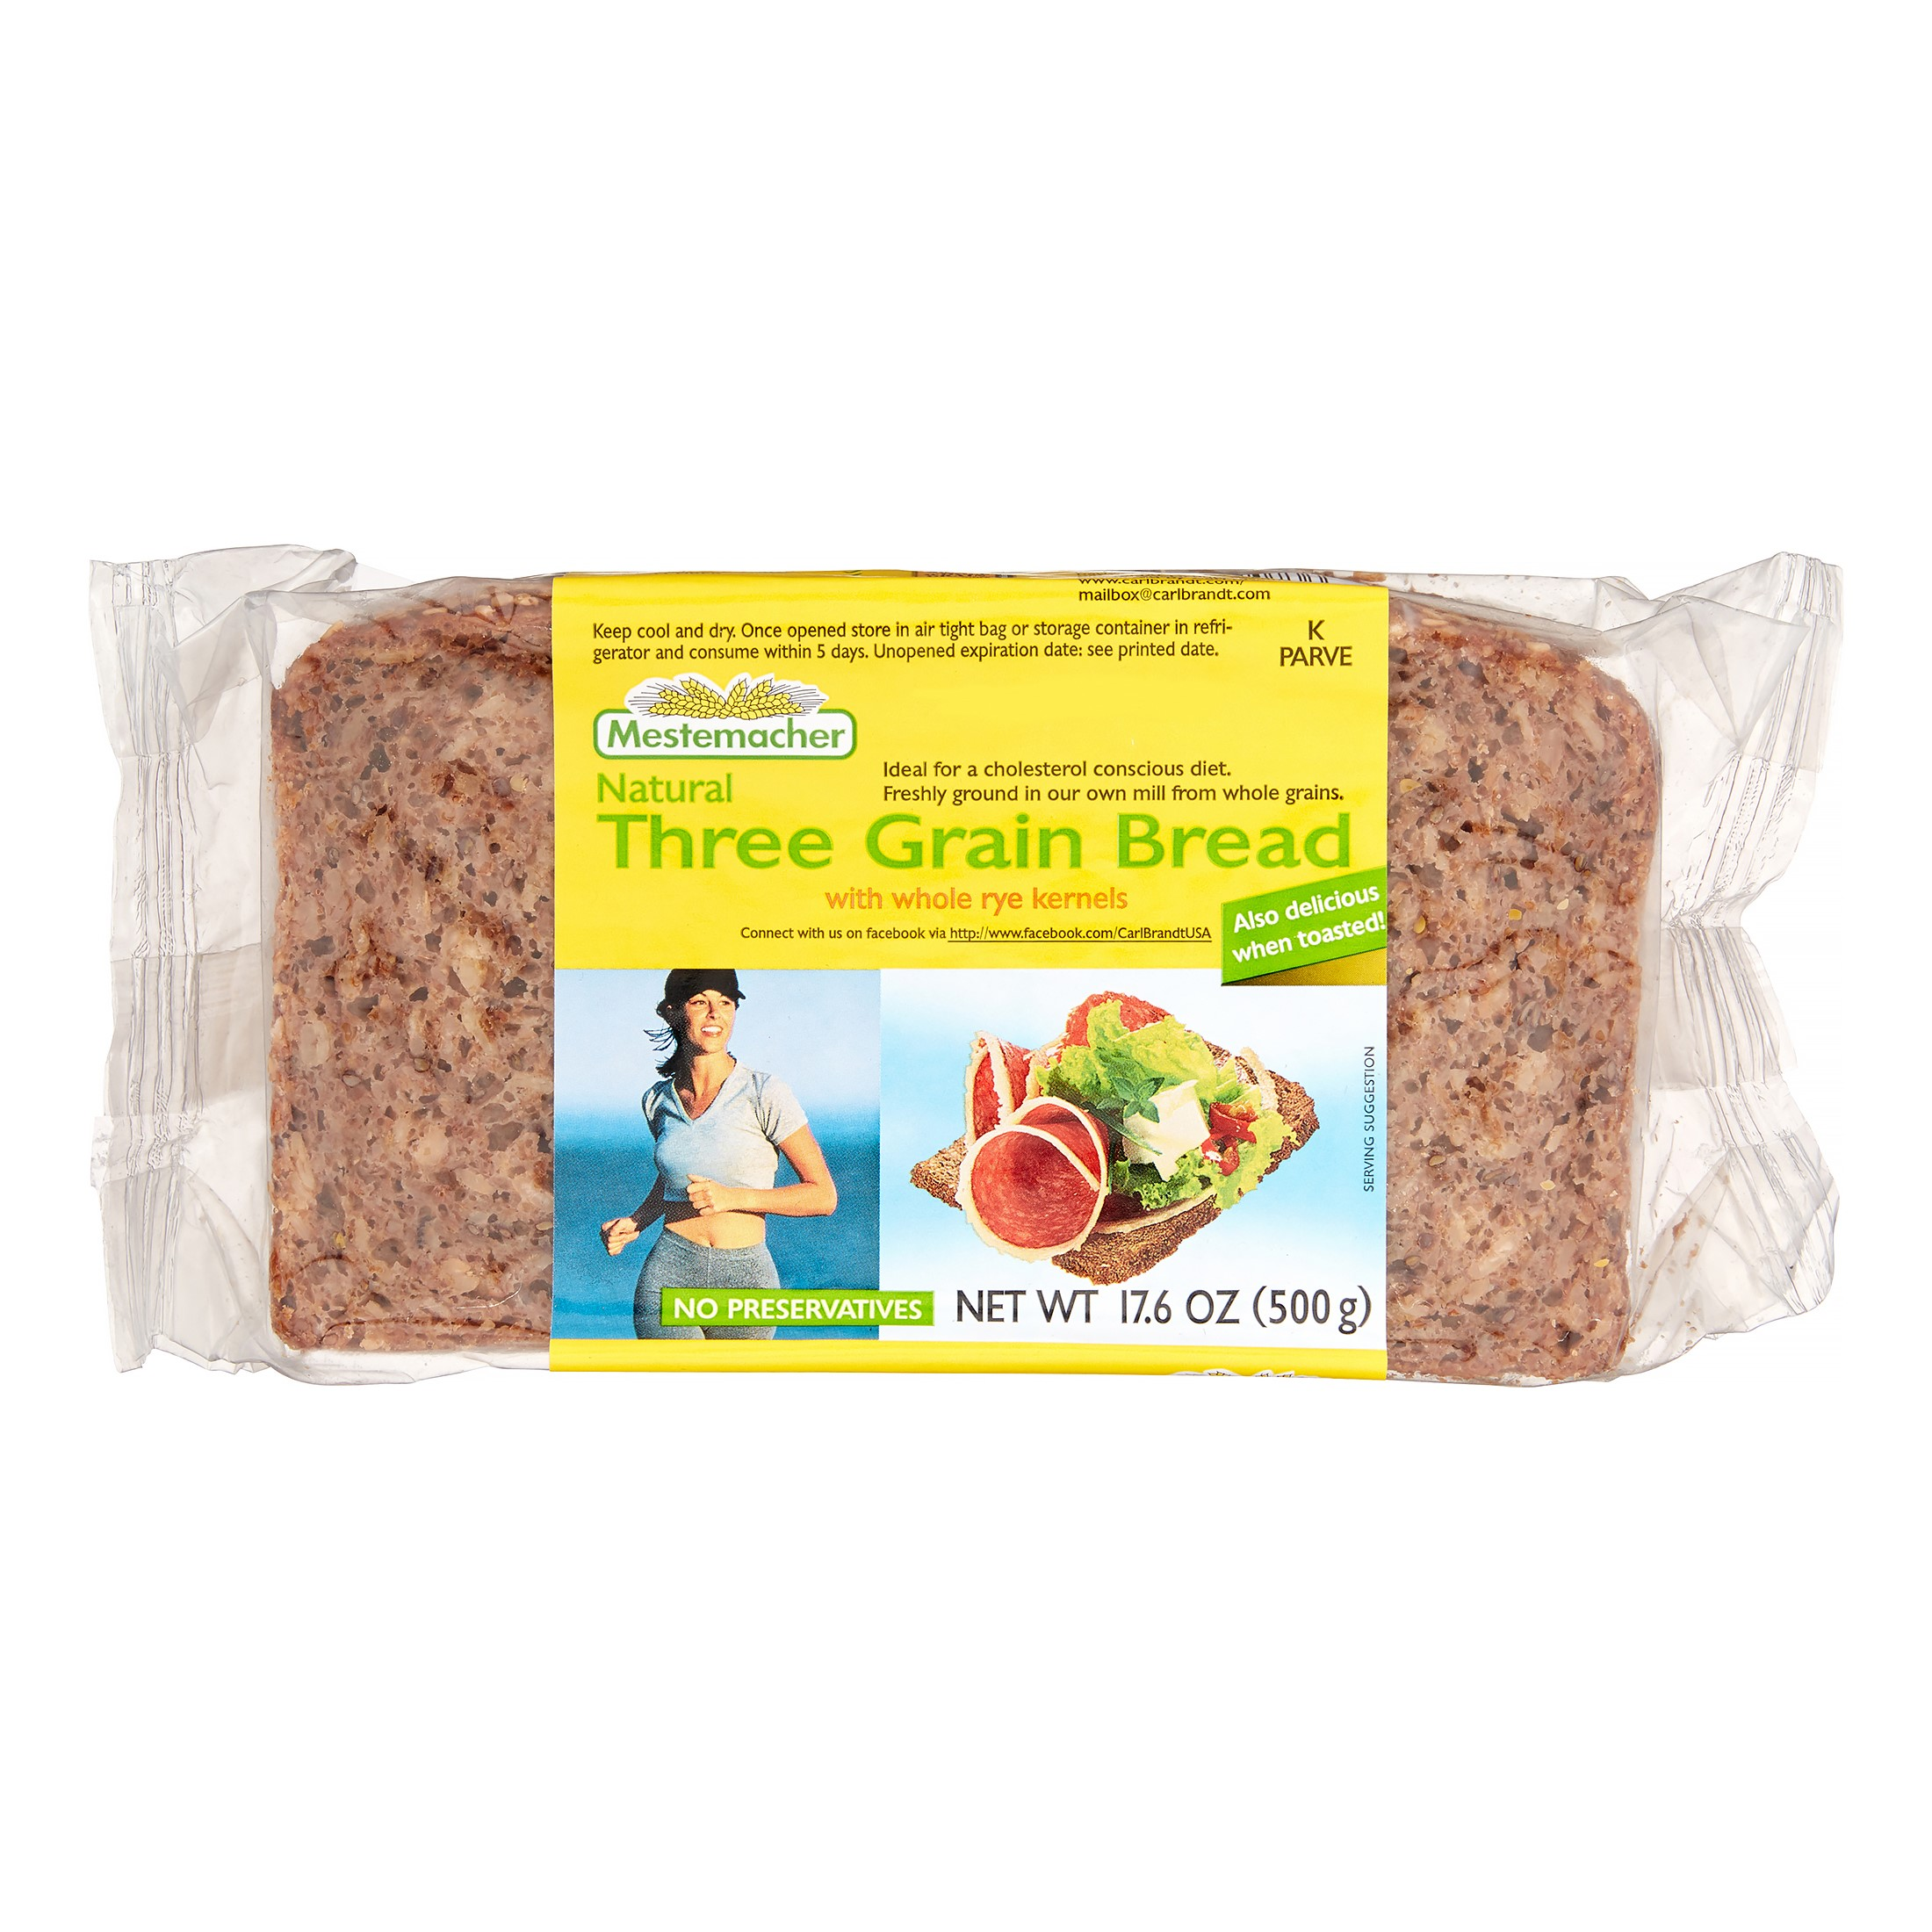 Mestemacher Natural Three Grain Bread, 17.6 Oz